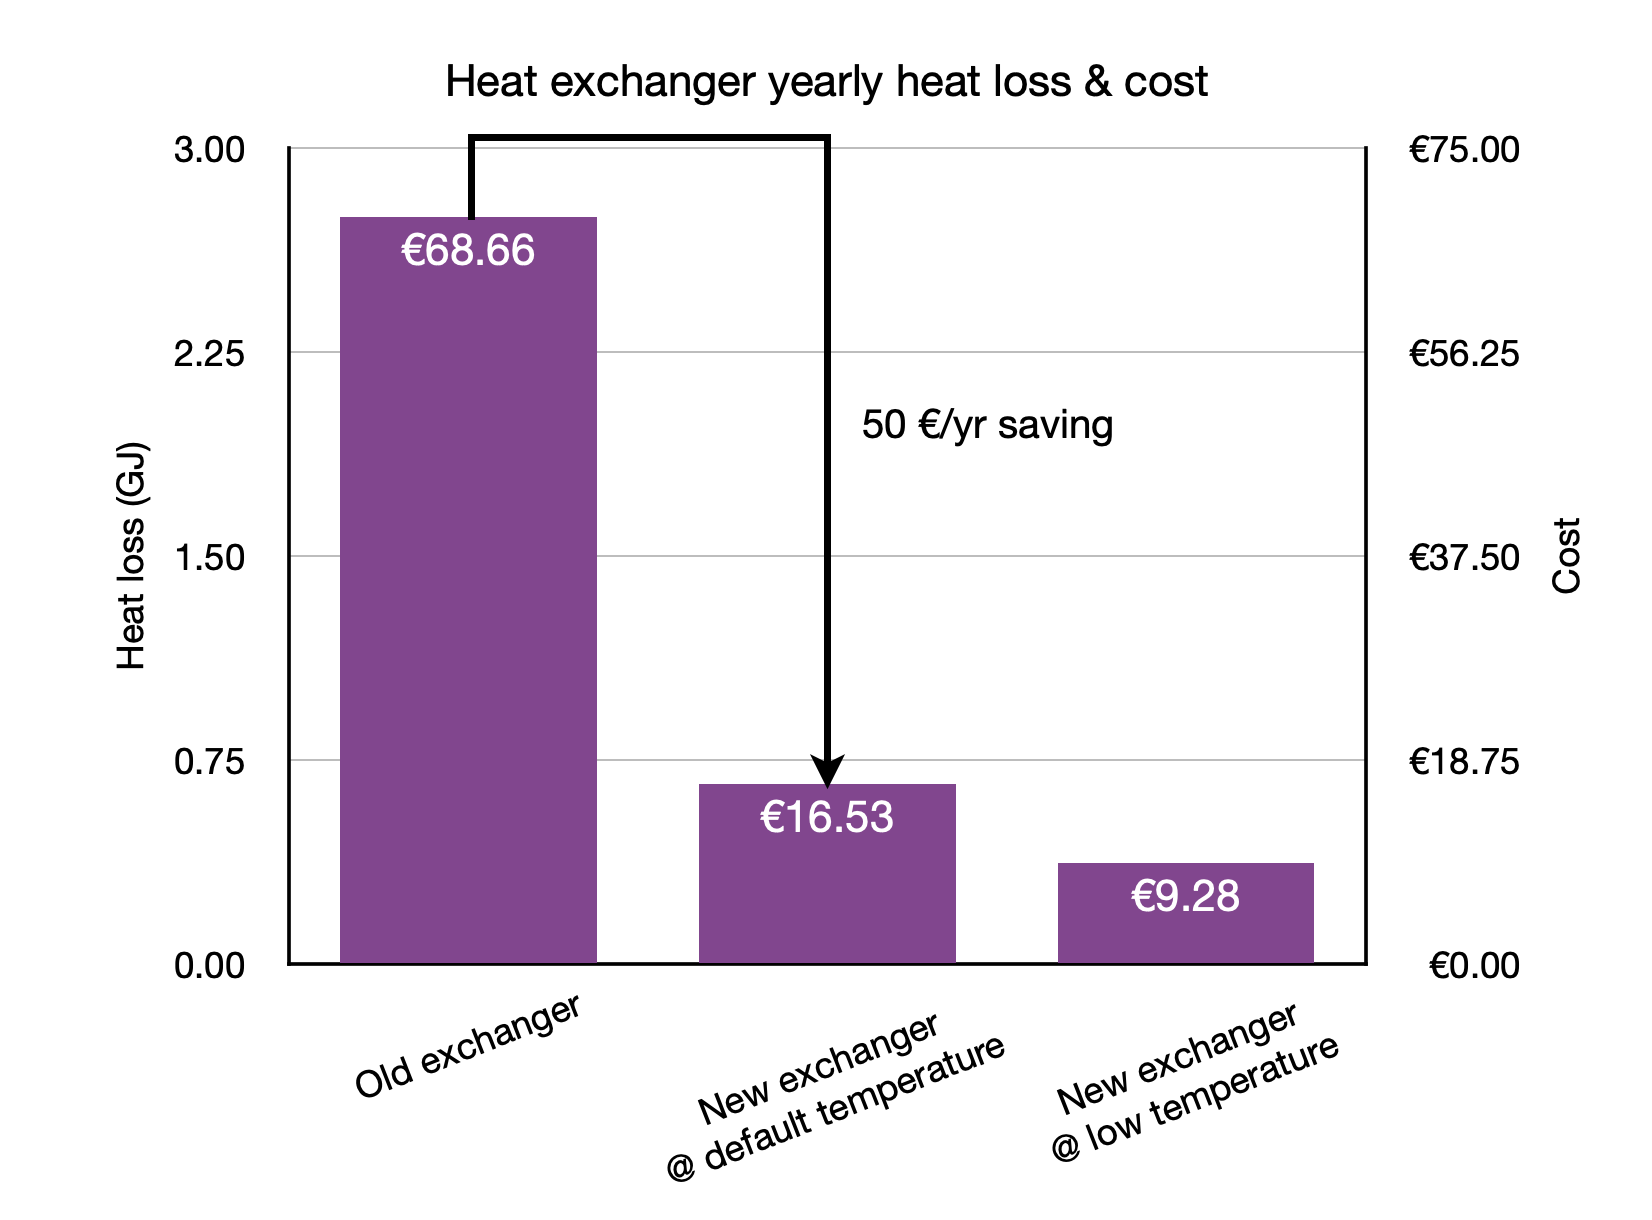 Heat exchanger yearly heat loss and cost comparison